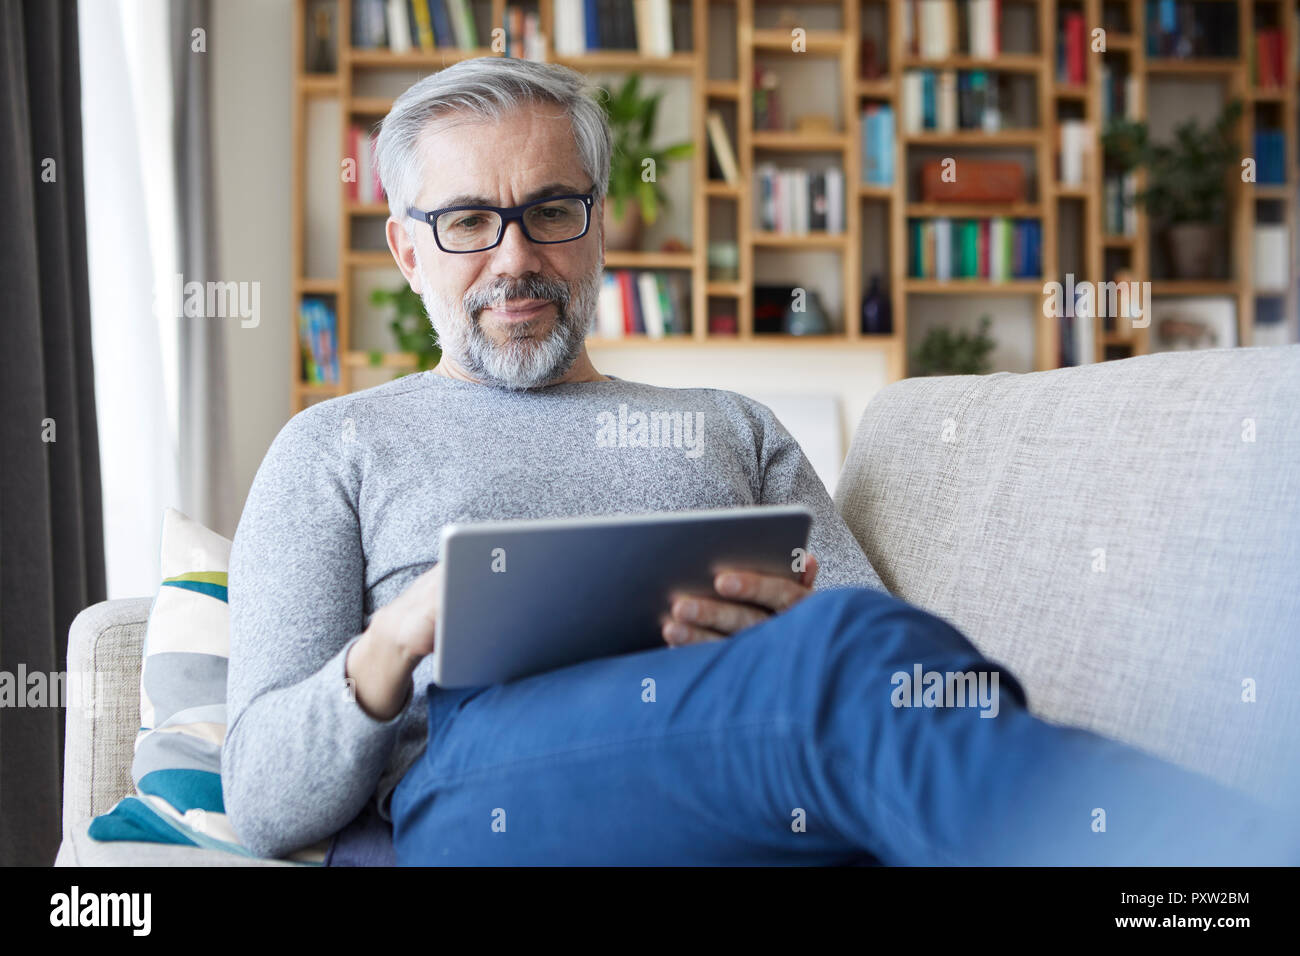 Portrait of mature man sitting on couch at his living room using tablet - Stock Image